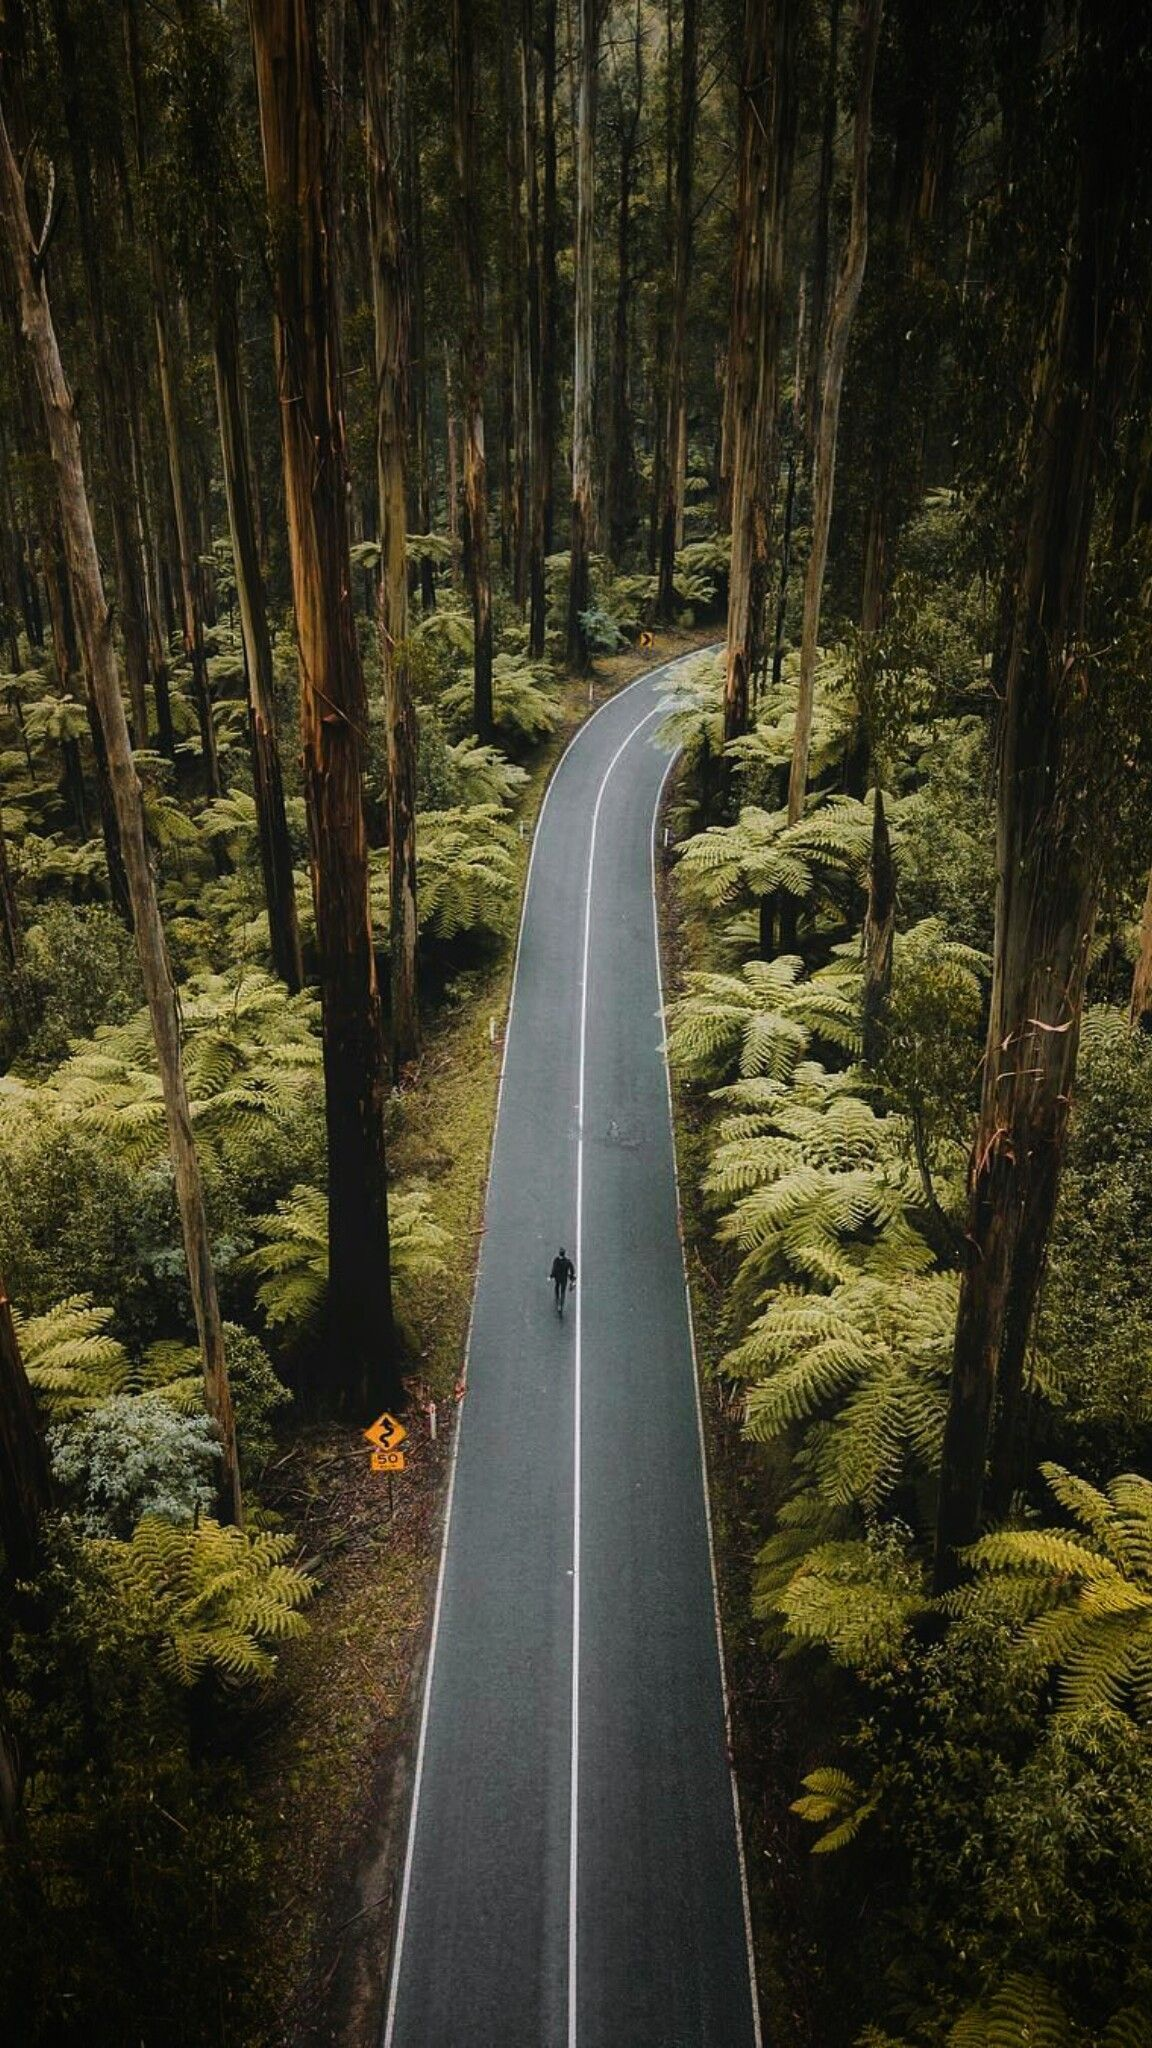 Green Highway Aerialview Verticallandscape Aerialphotography Aerial Photography Drone Vertical Landscape Nature Photography